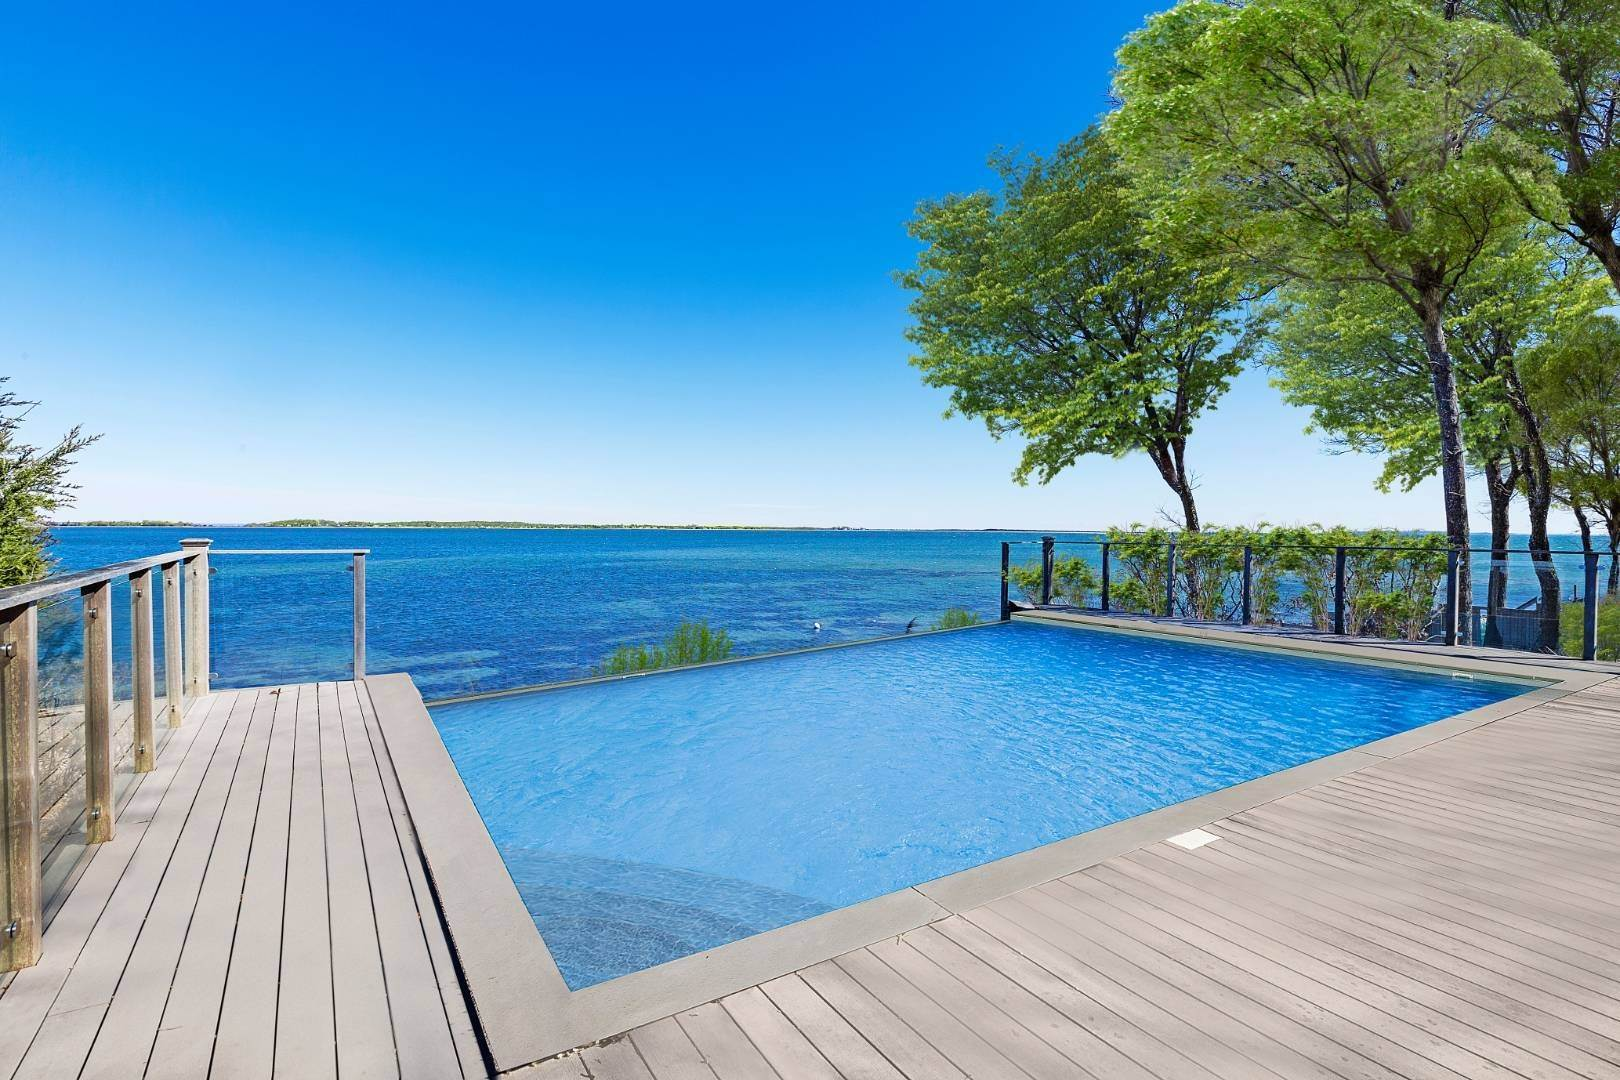 Single Family Home for Sale at Shelter Island Bayfront With Infinity Edge Pool And Sandy Beach 17 Point Lane, Shelter Island Heights, NY 11964